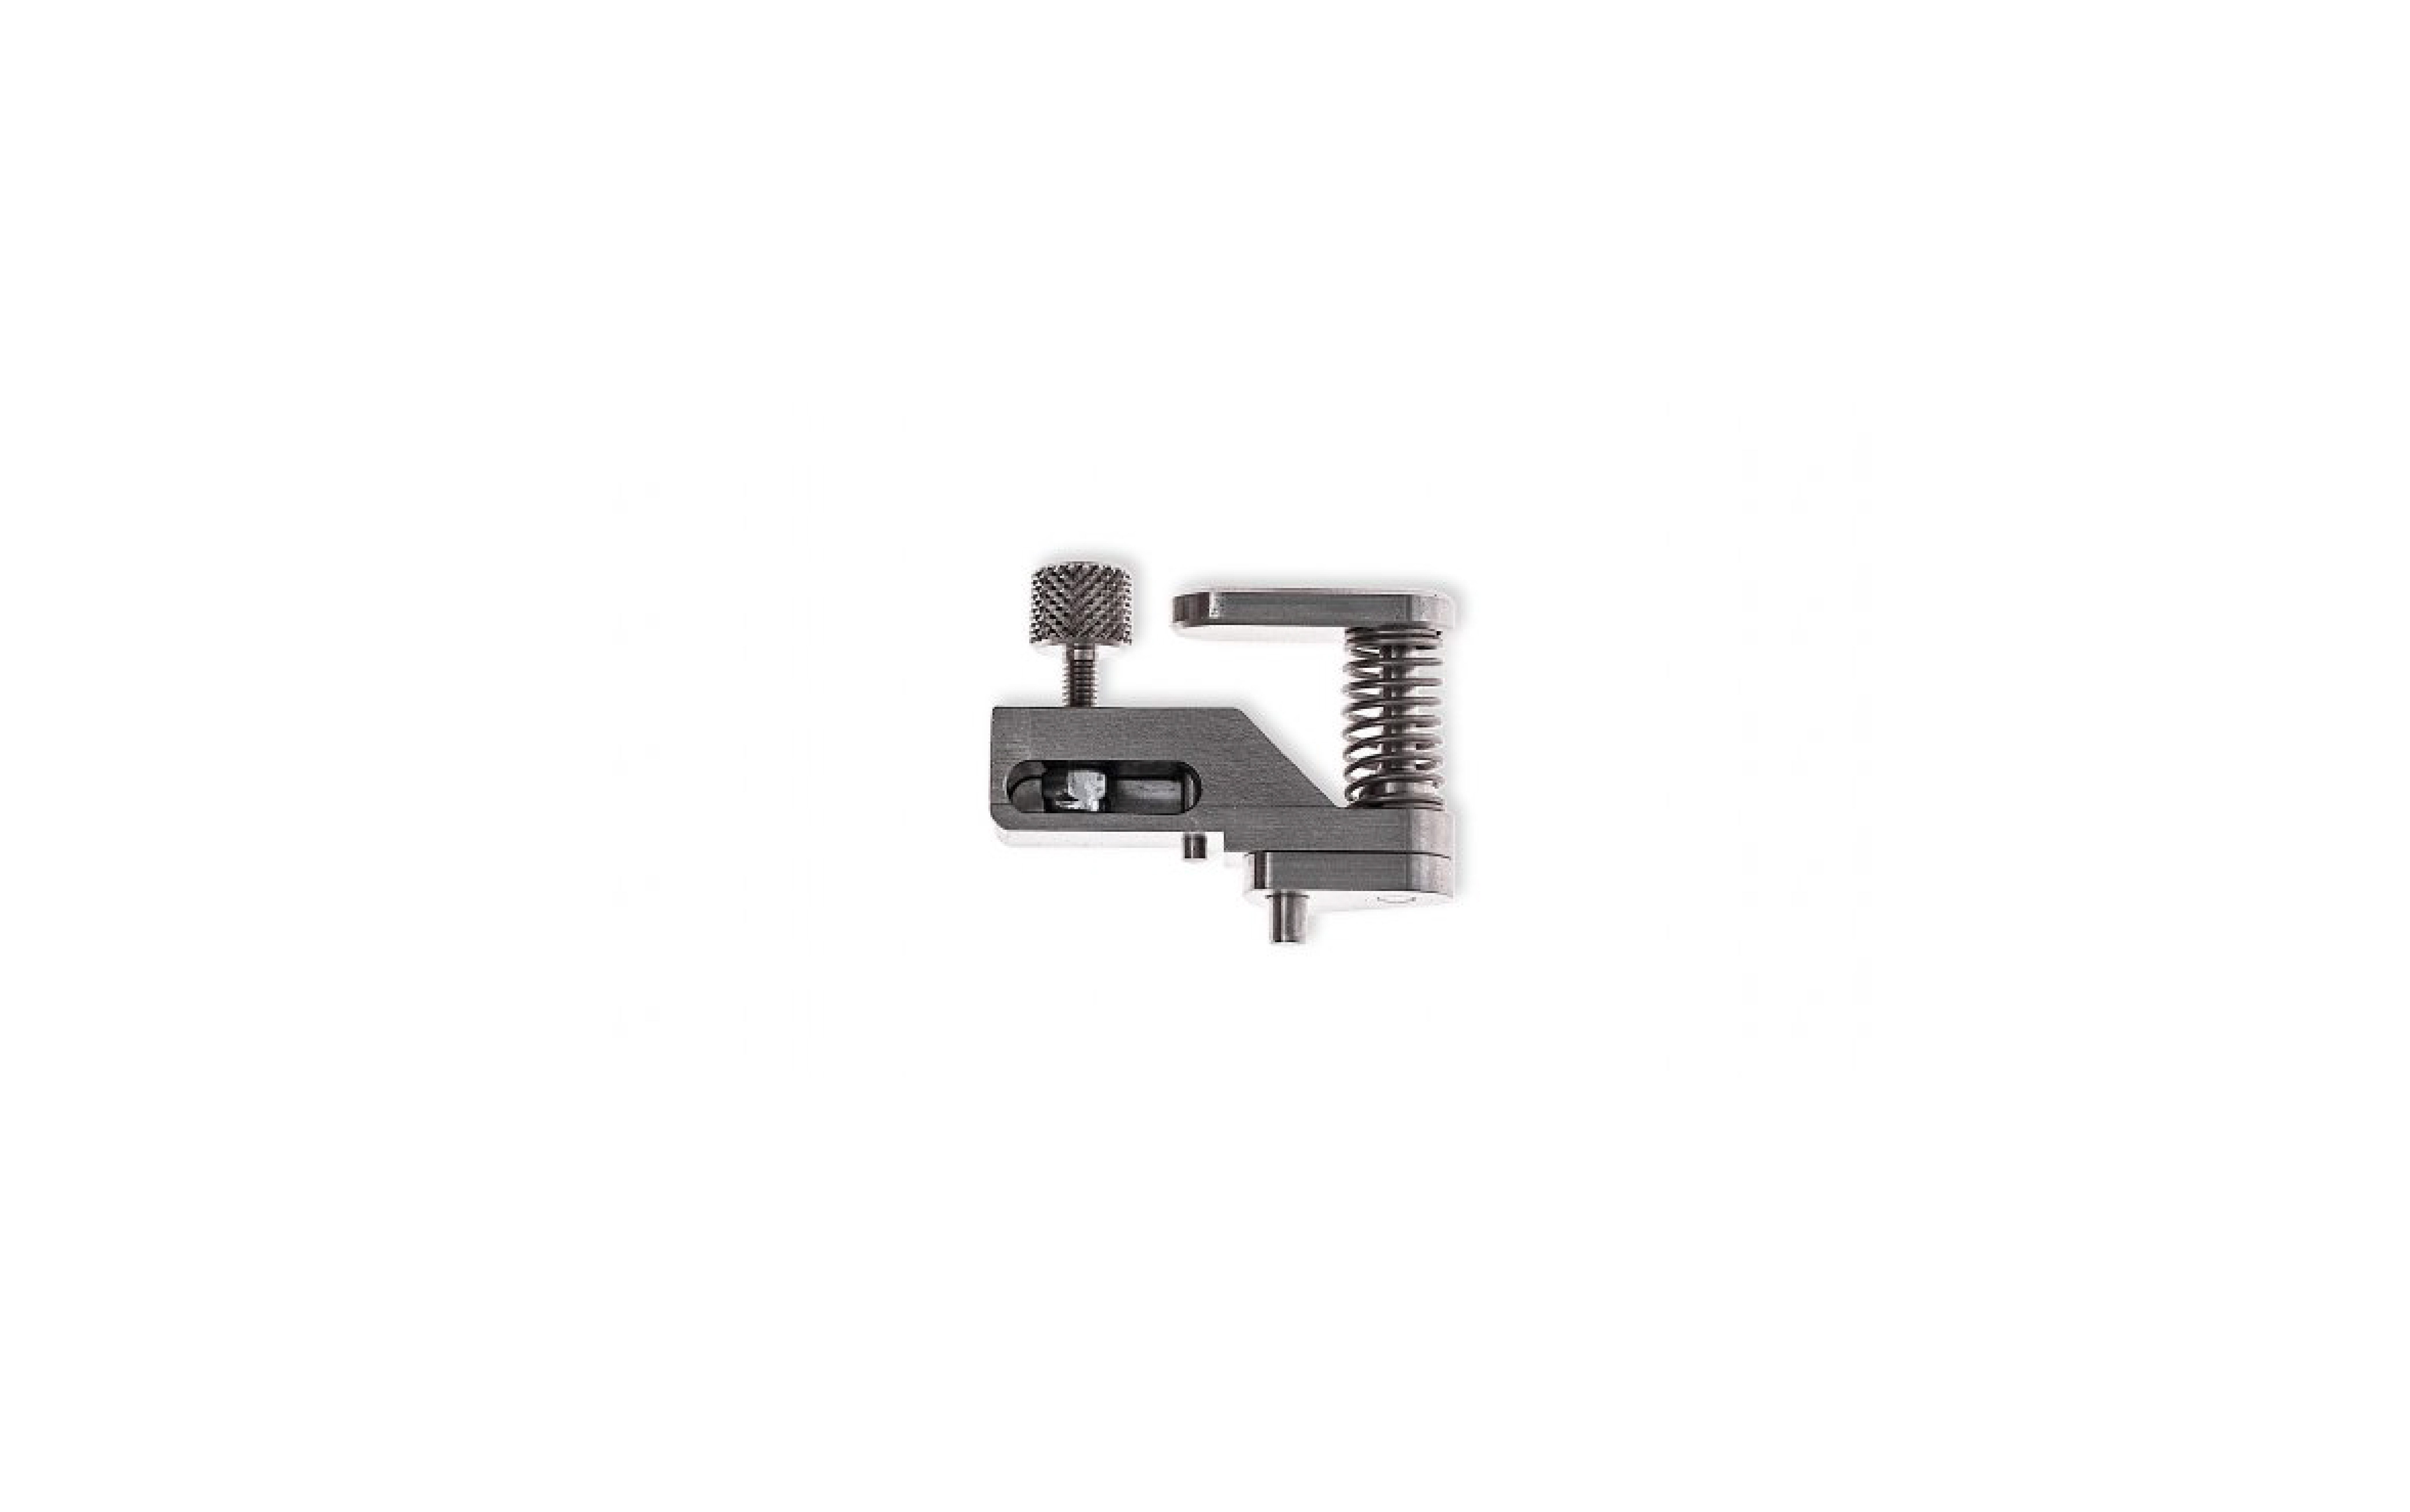 PCB clip for use with IRF/HIF